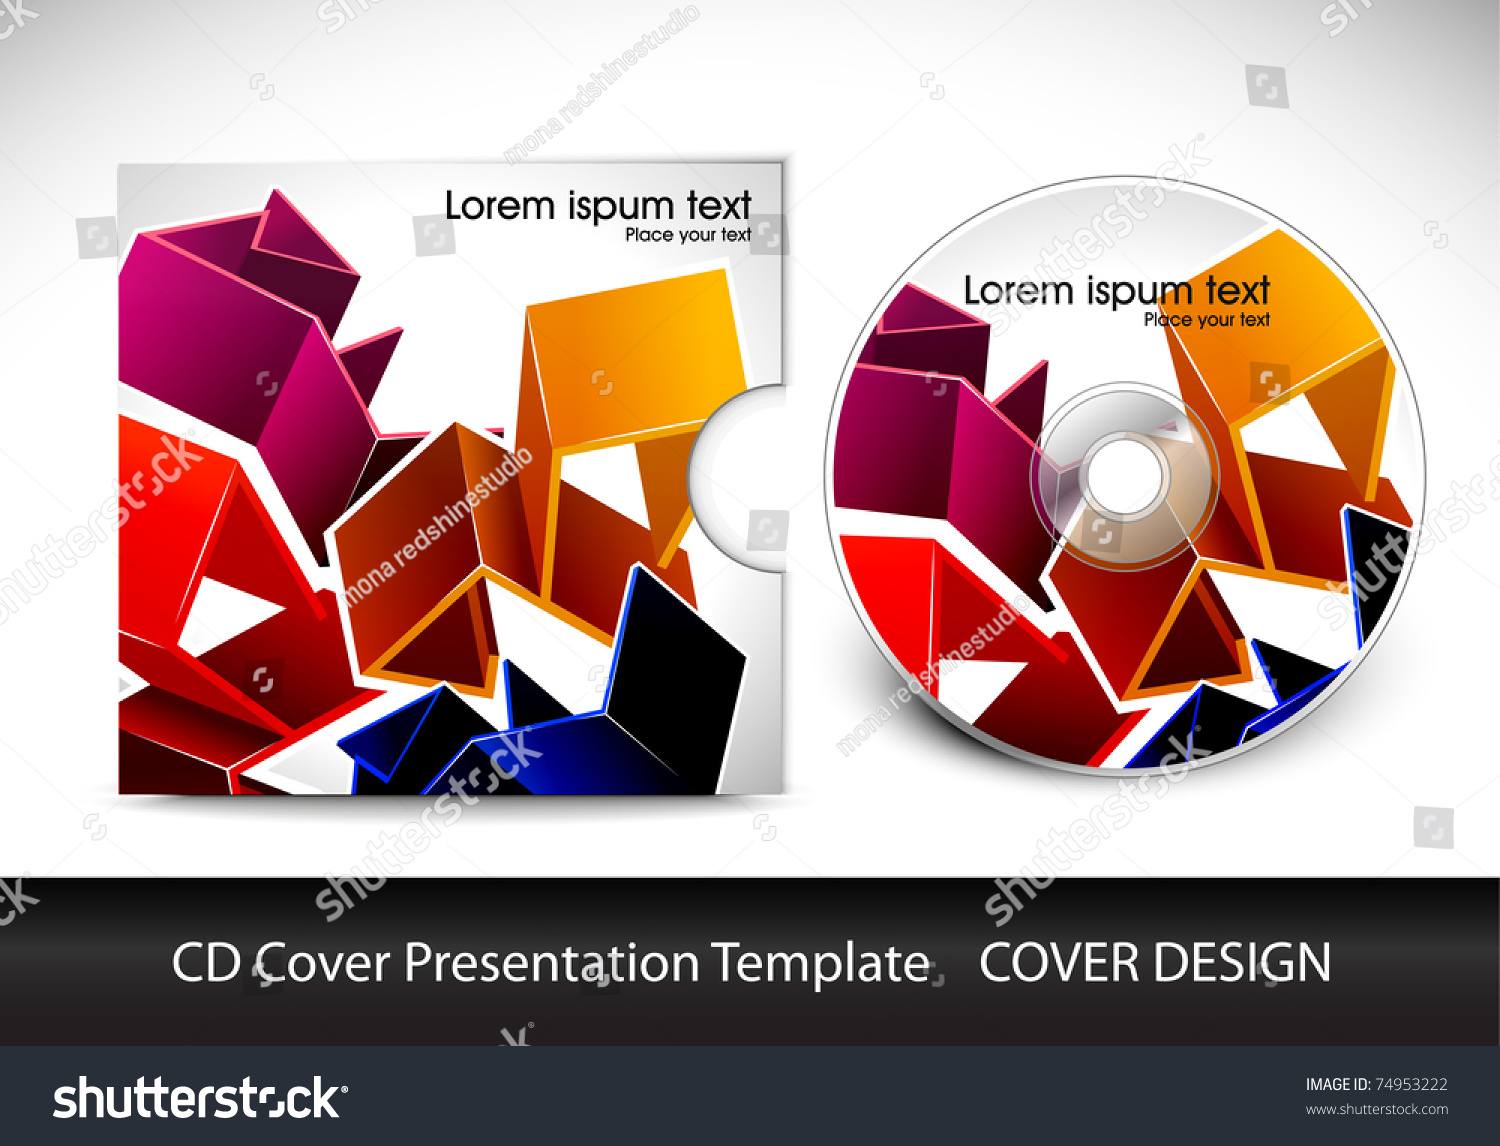 cd cover design template presentation editable stock vector 74953222 shutterstock. Black Bedroom Furniture Sets. Home Design Ideas